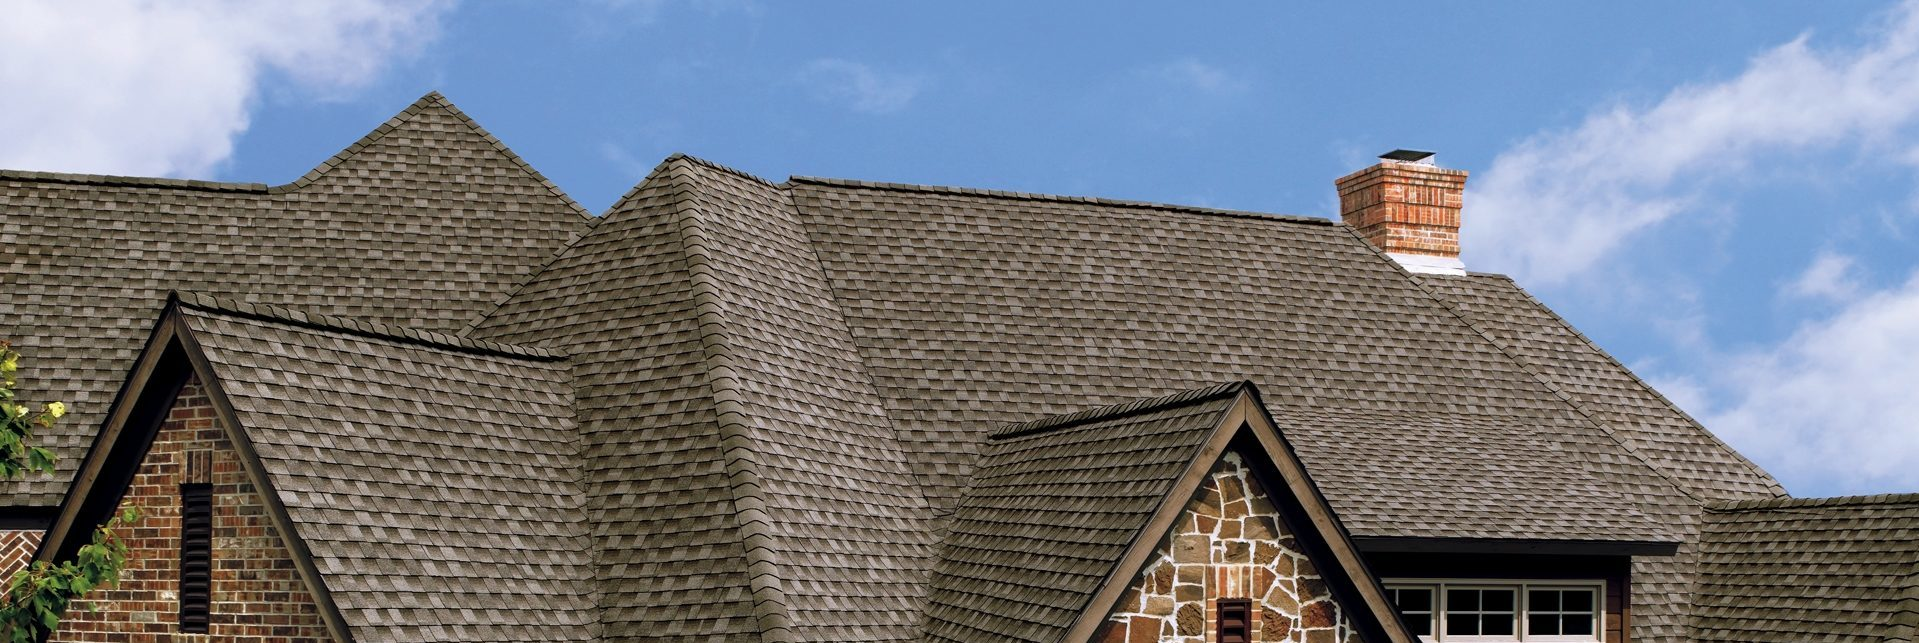 Get A Complimentary Roof Assessment Today